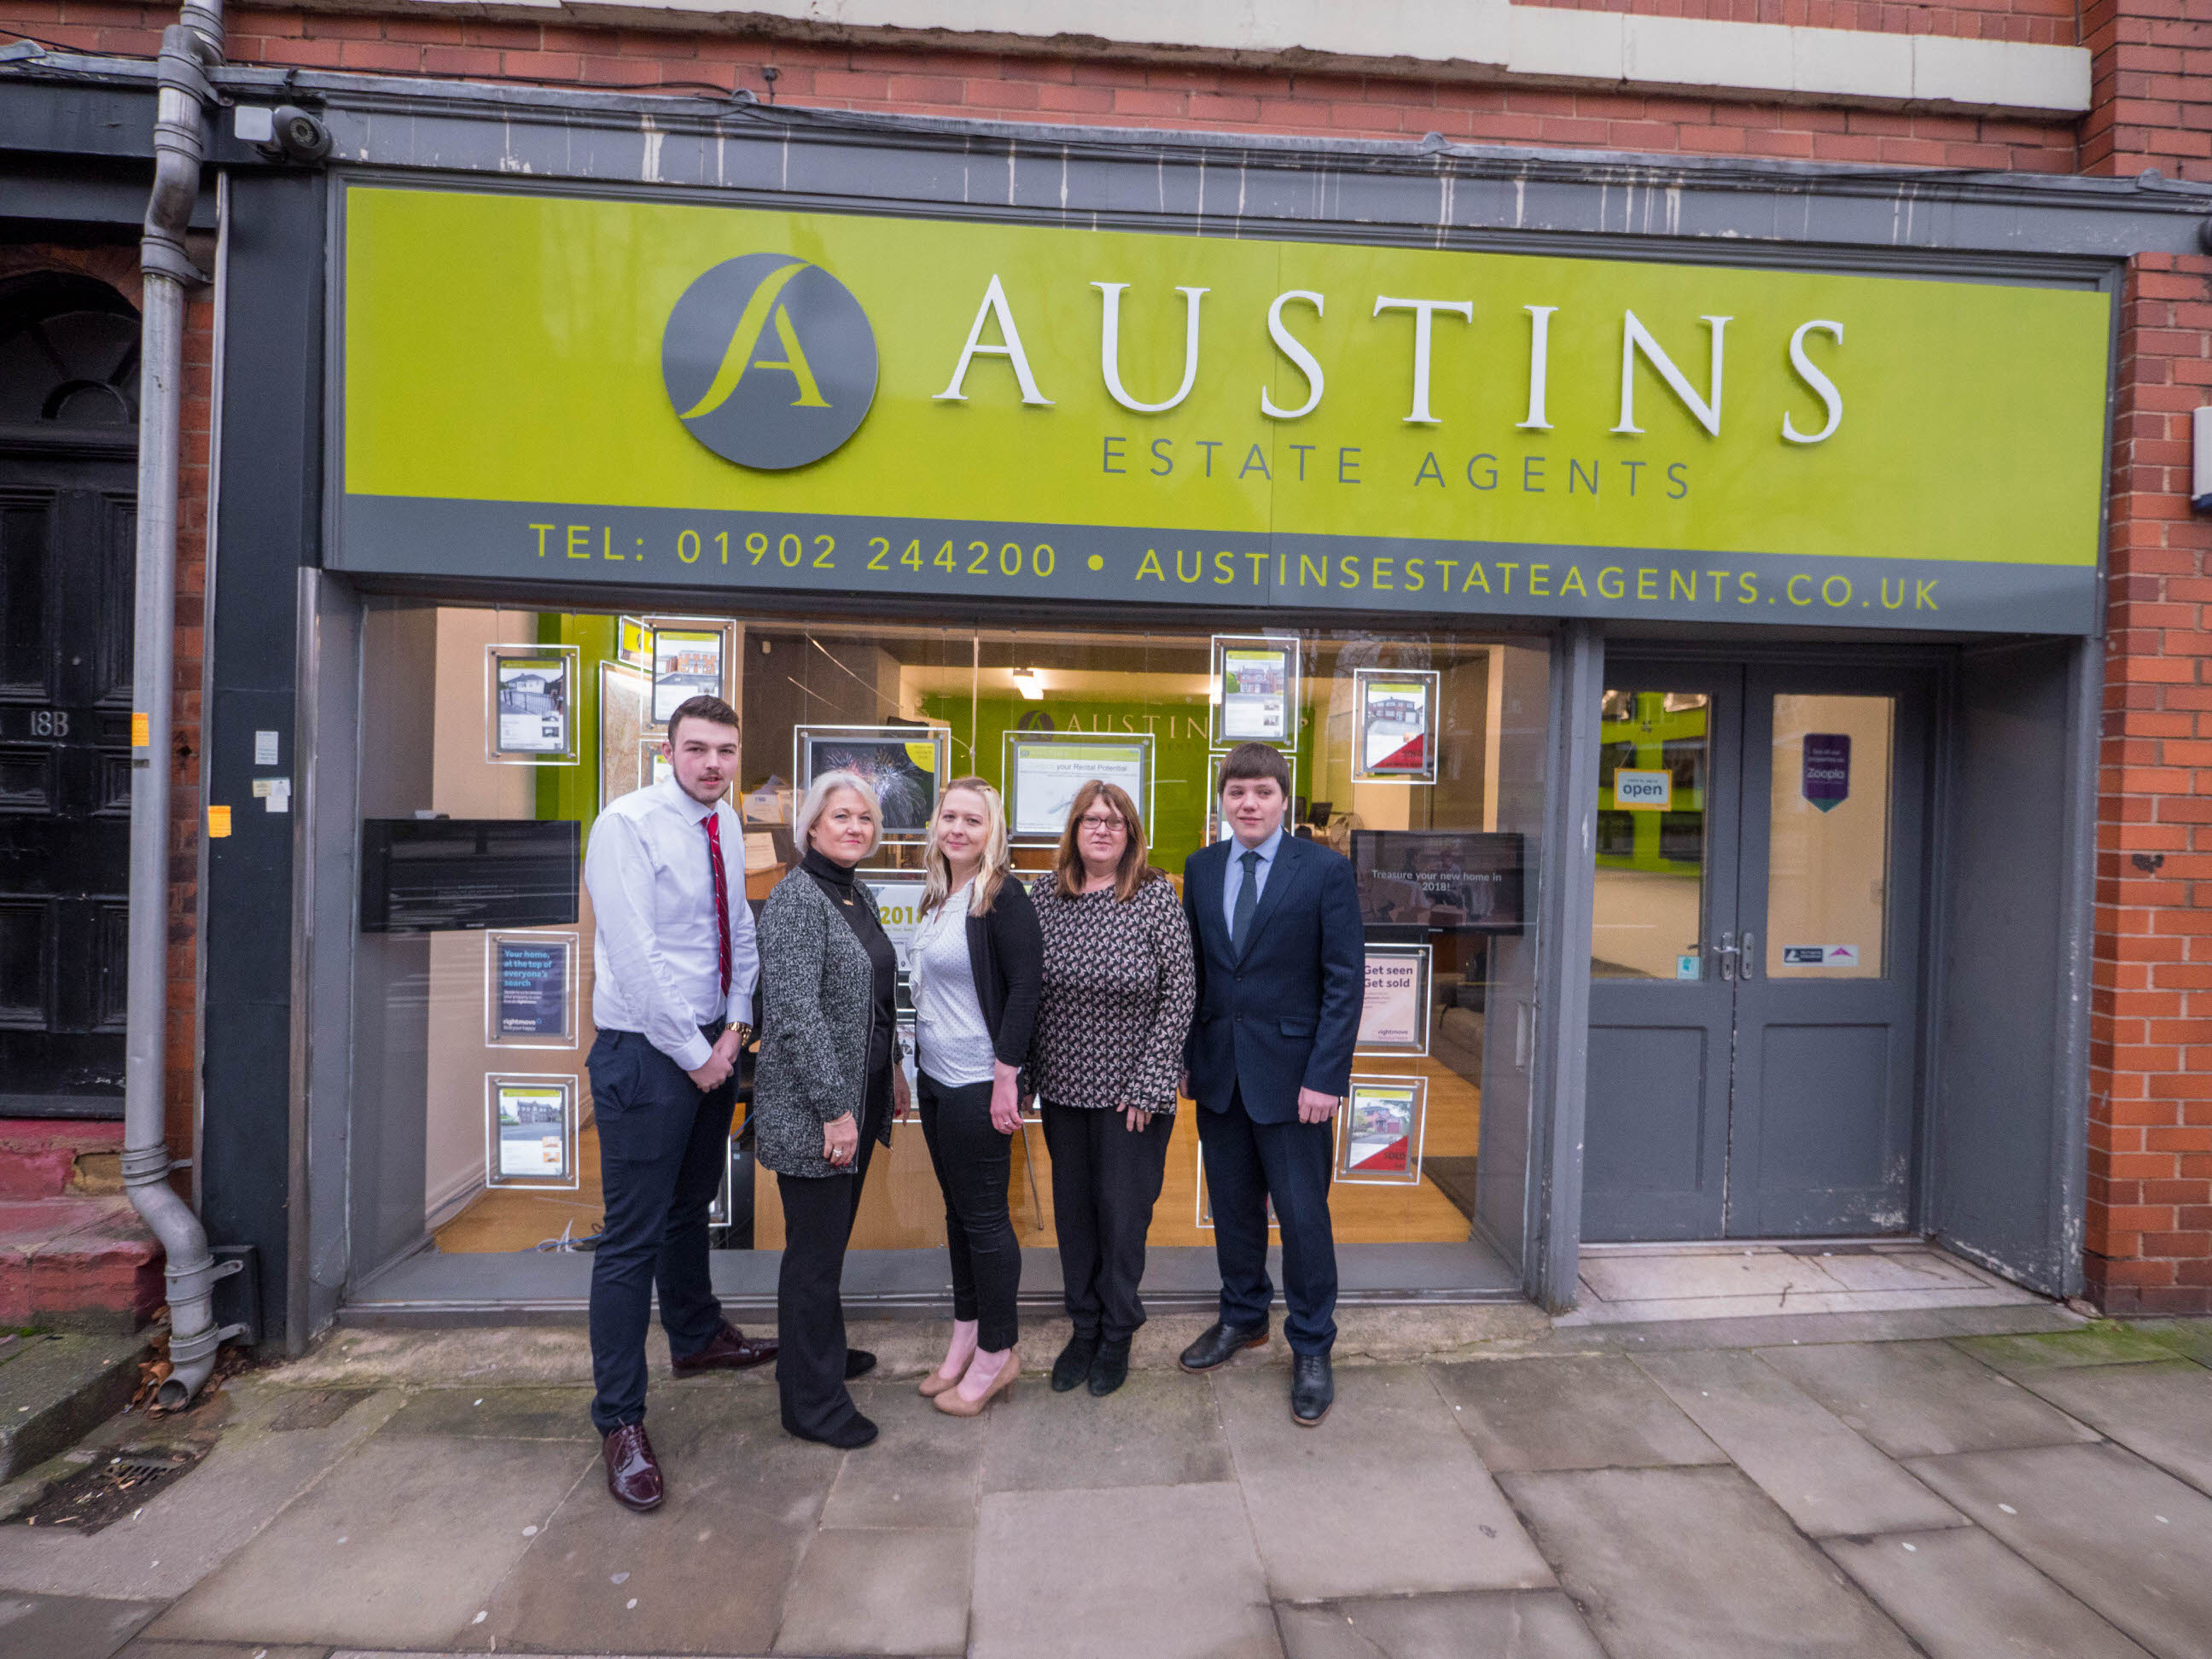 Austins Landlord Event - Austins Estate Agents, Wolverhampton